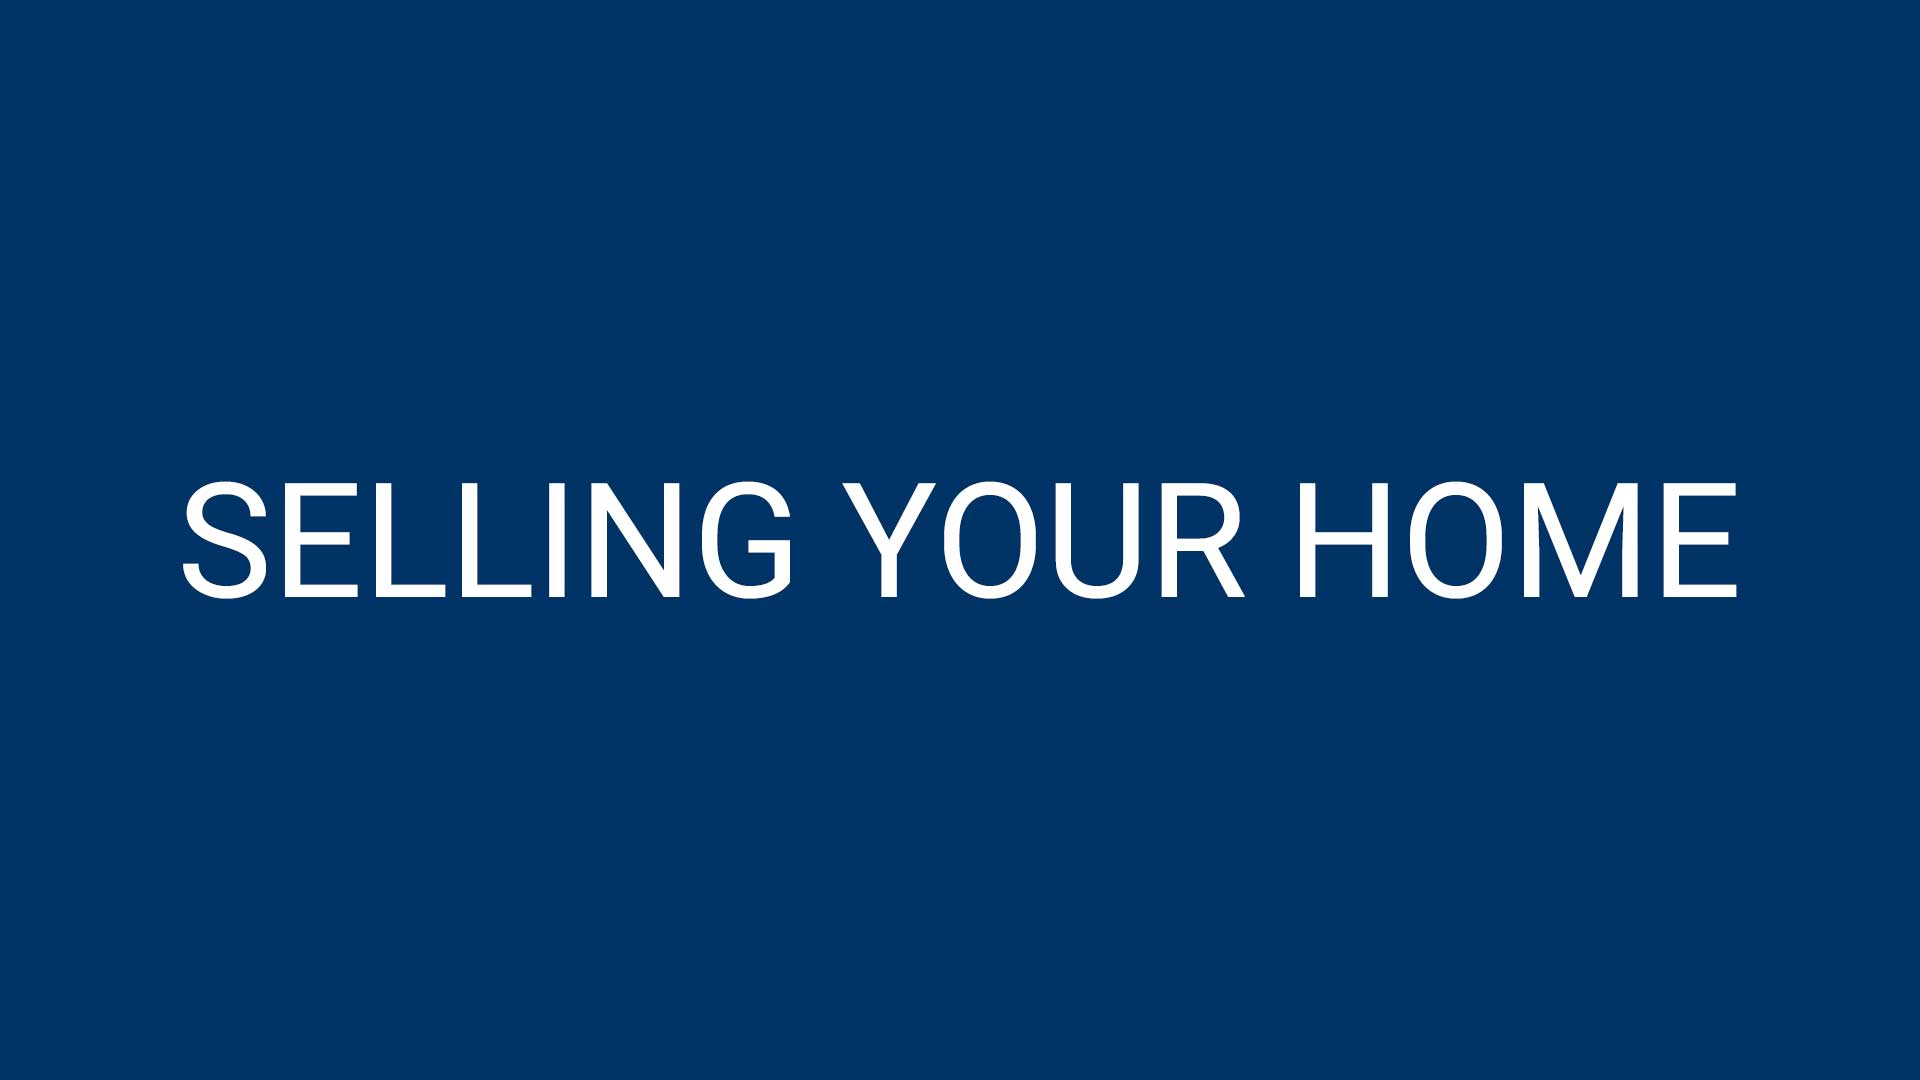 SFR Selling Your Home